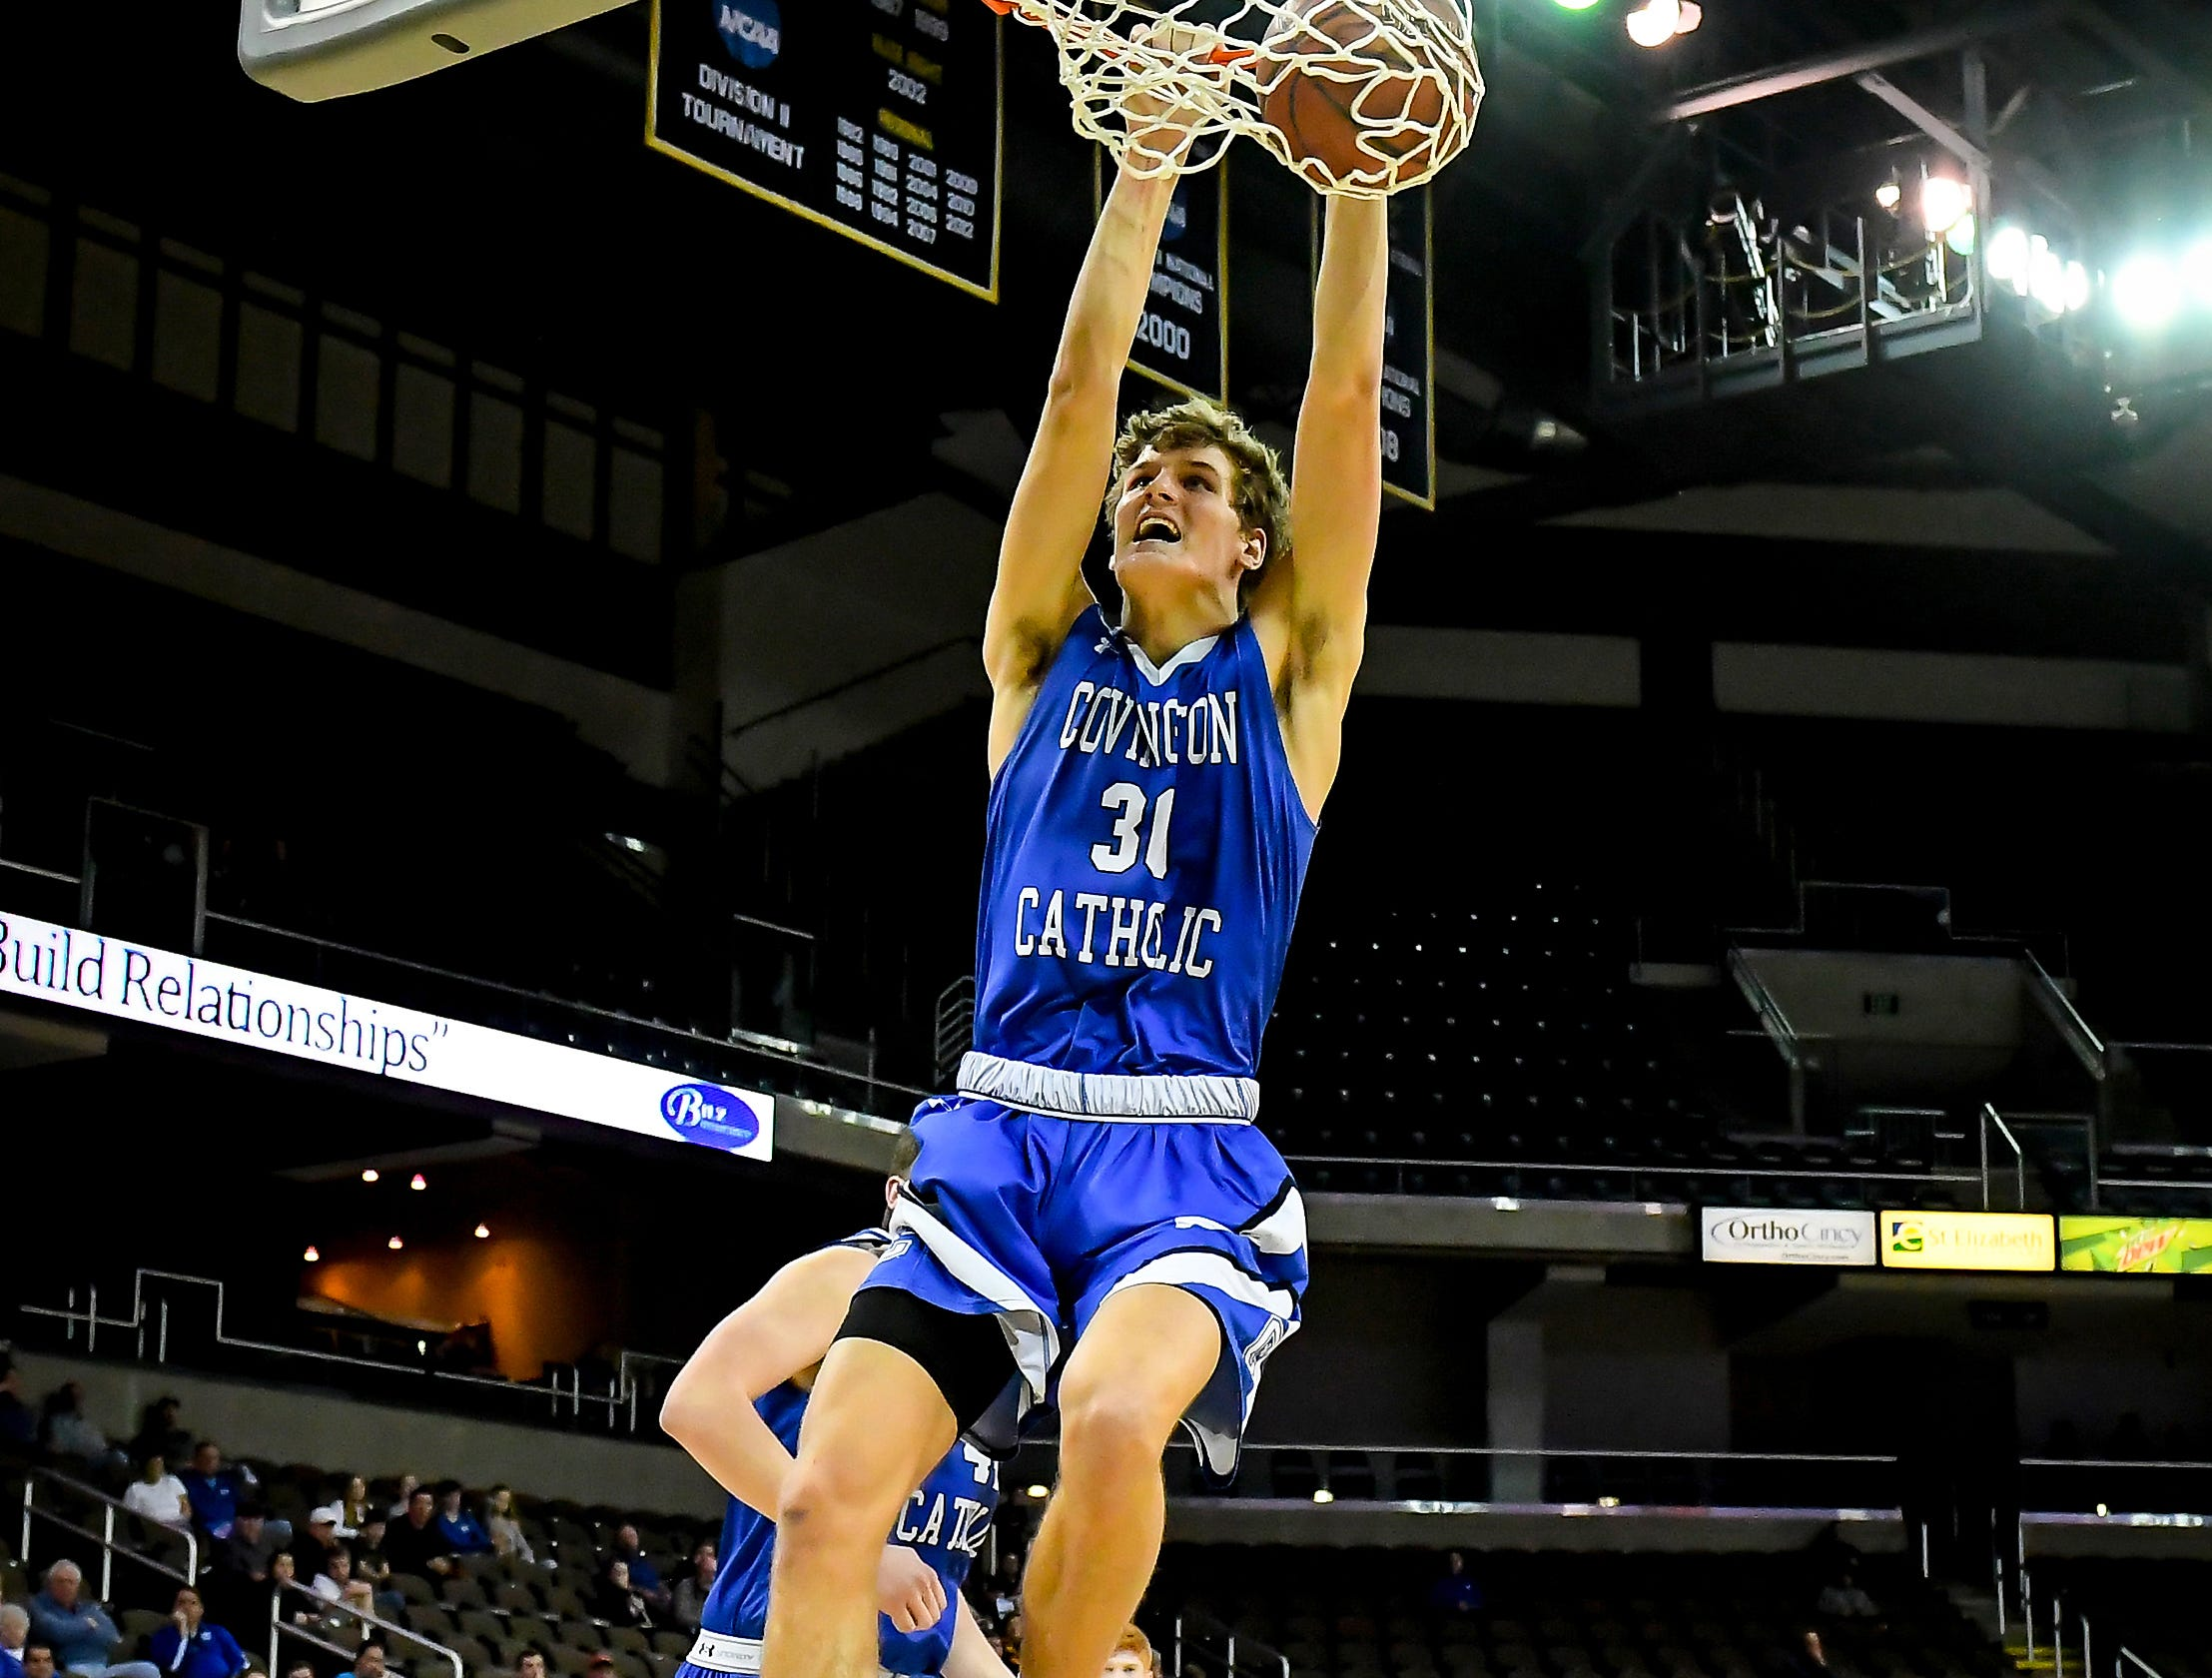 Nick Thelen of Covington Catholic goes in for the dunk against Cooper in the Bluegrass-Buckeye Charity Classic at BB&T Arena, Sunday, Jan. 21, 2018.